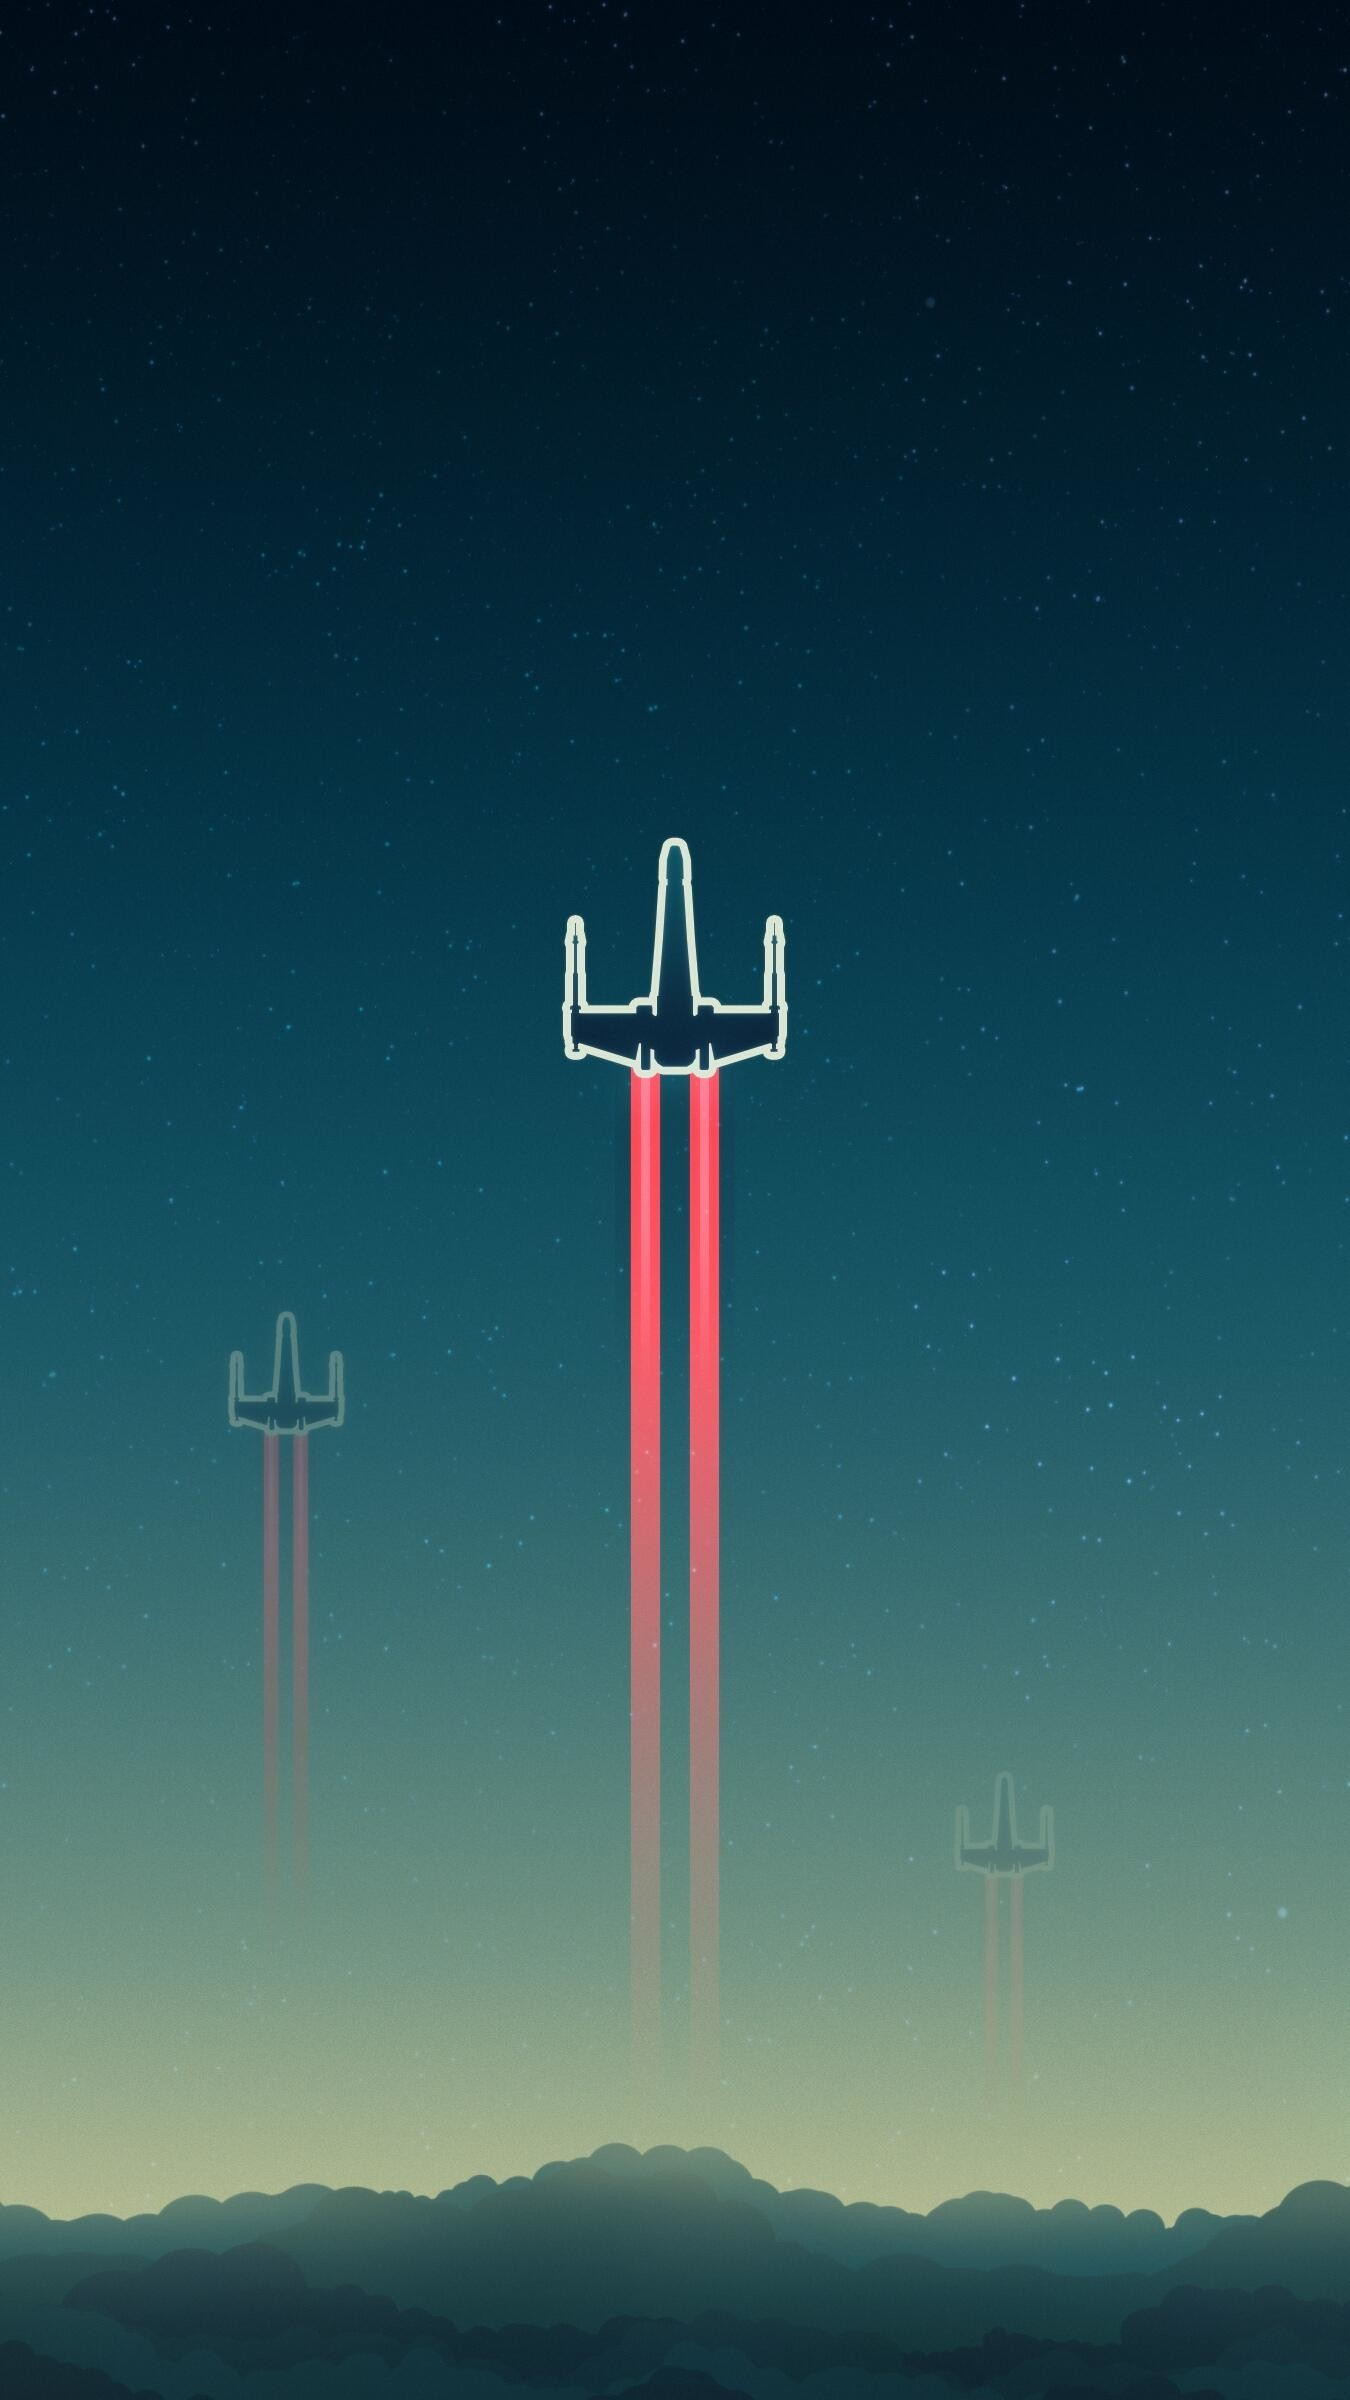 Star Wars Cell Phone Wallpaper 81 Images